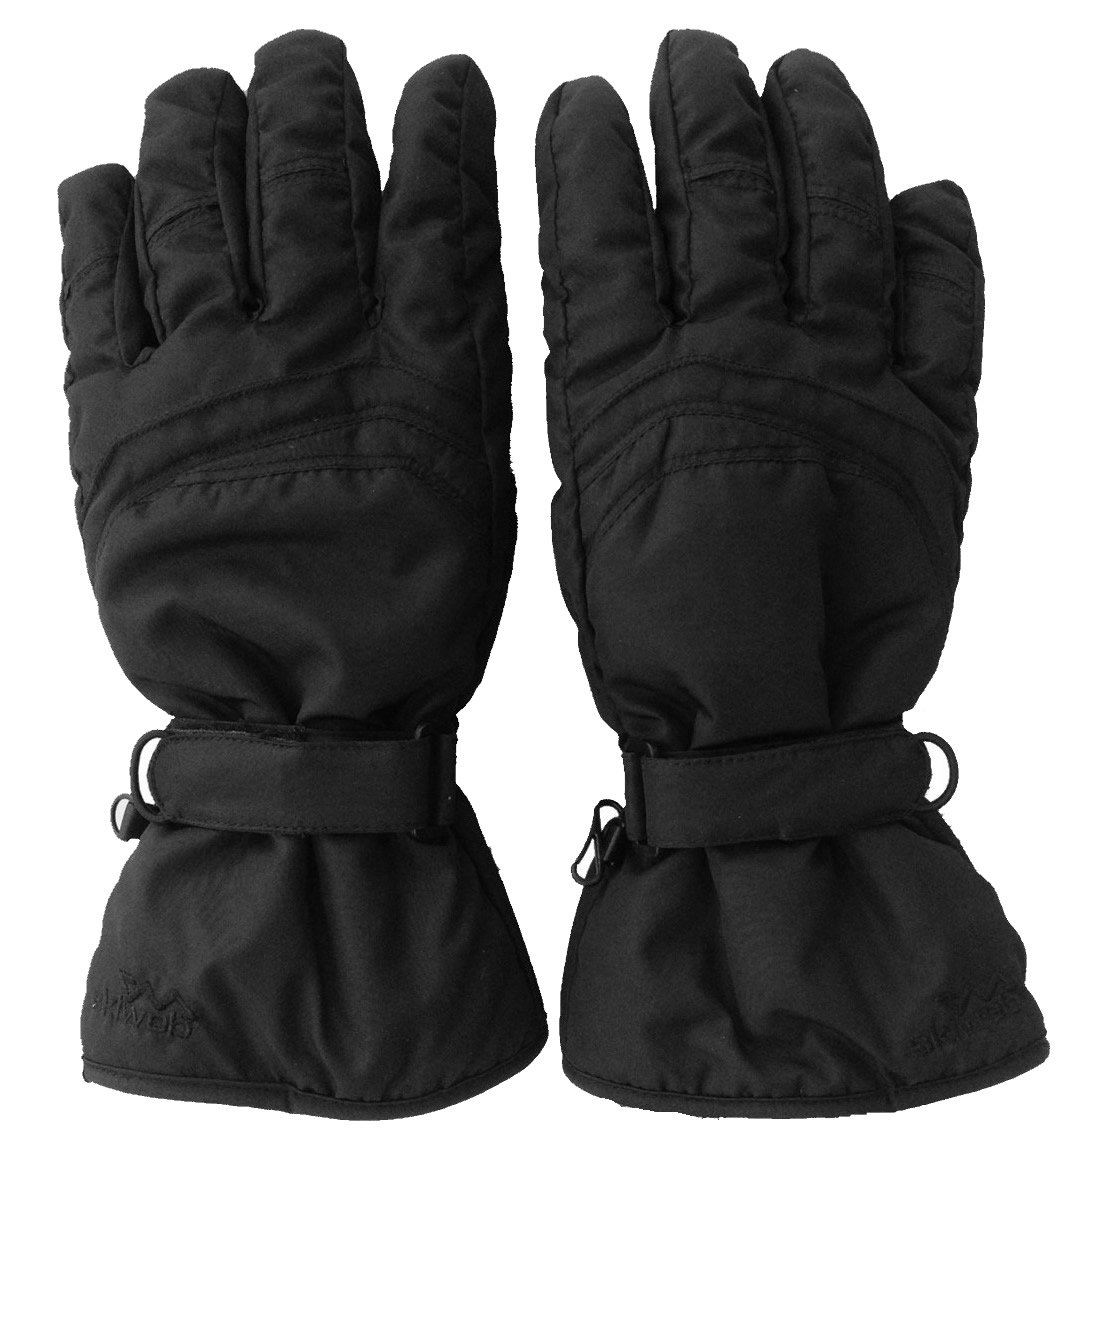 Extra small ladies leather gloves uk - Ladies Black Ski Gloves Sizes Extra Small Large